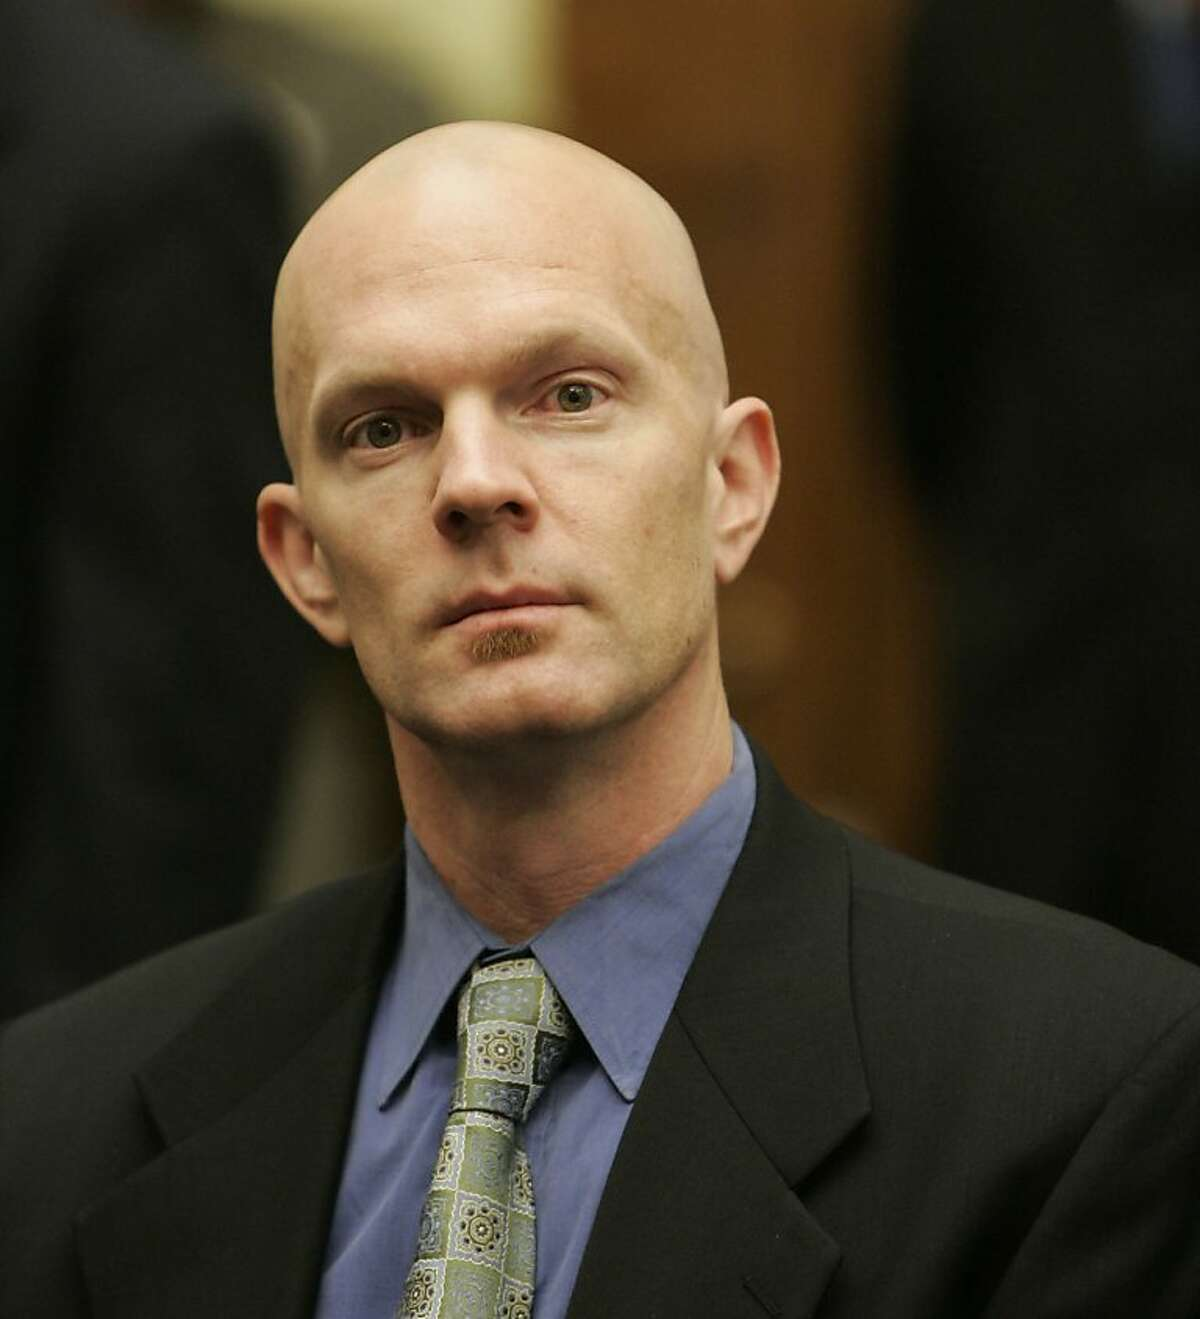 FILE - This Feb. 13, 2008, file photo shows federal agent Jeff Novitzky on Capitol Hill in Washington. For someone who does his best work behind the scenes, Novitzky is hardly a stranger to the spotlight. And depending on the results of an ongoing investigation into the sometimes-shadowy world of pro cycling, he could soon become better-known still.